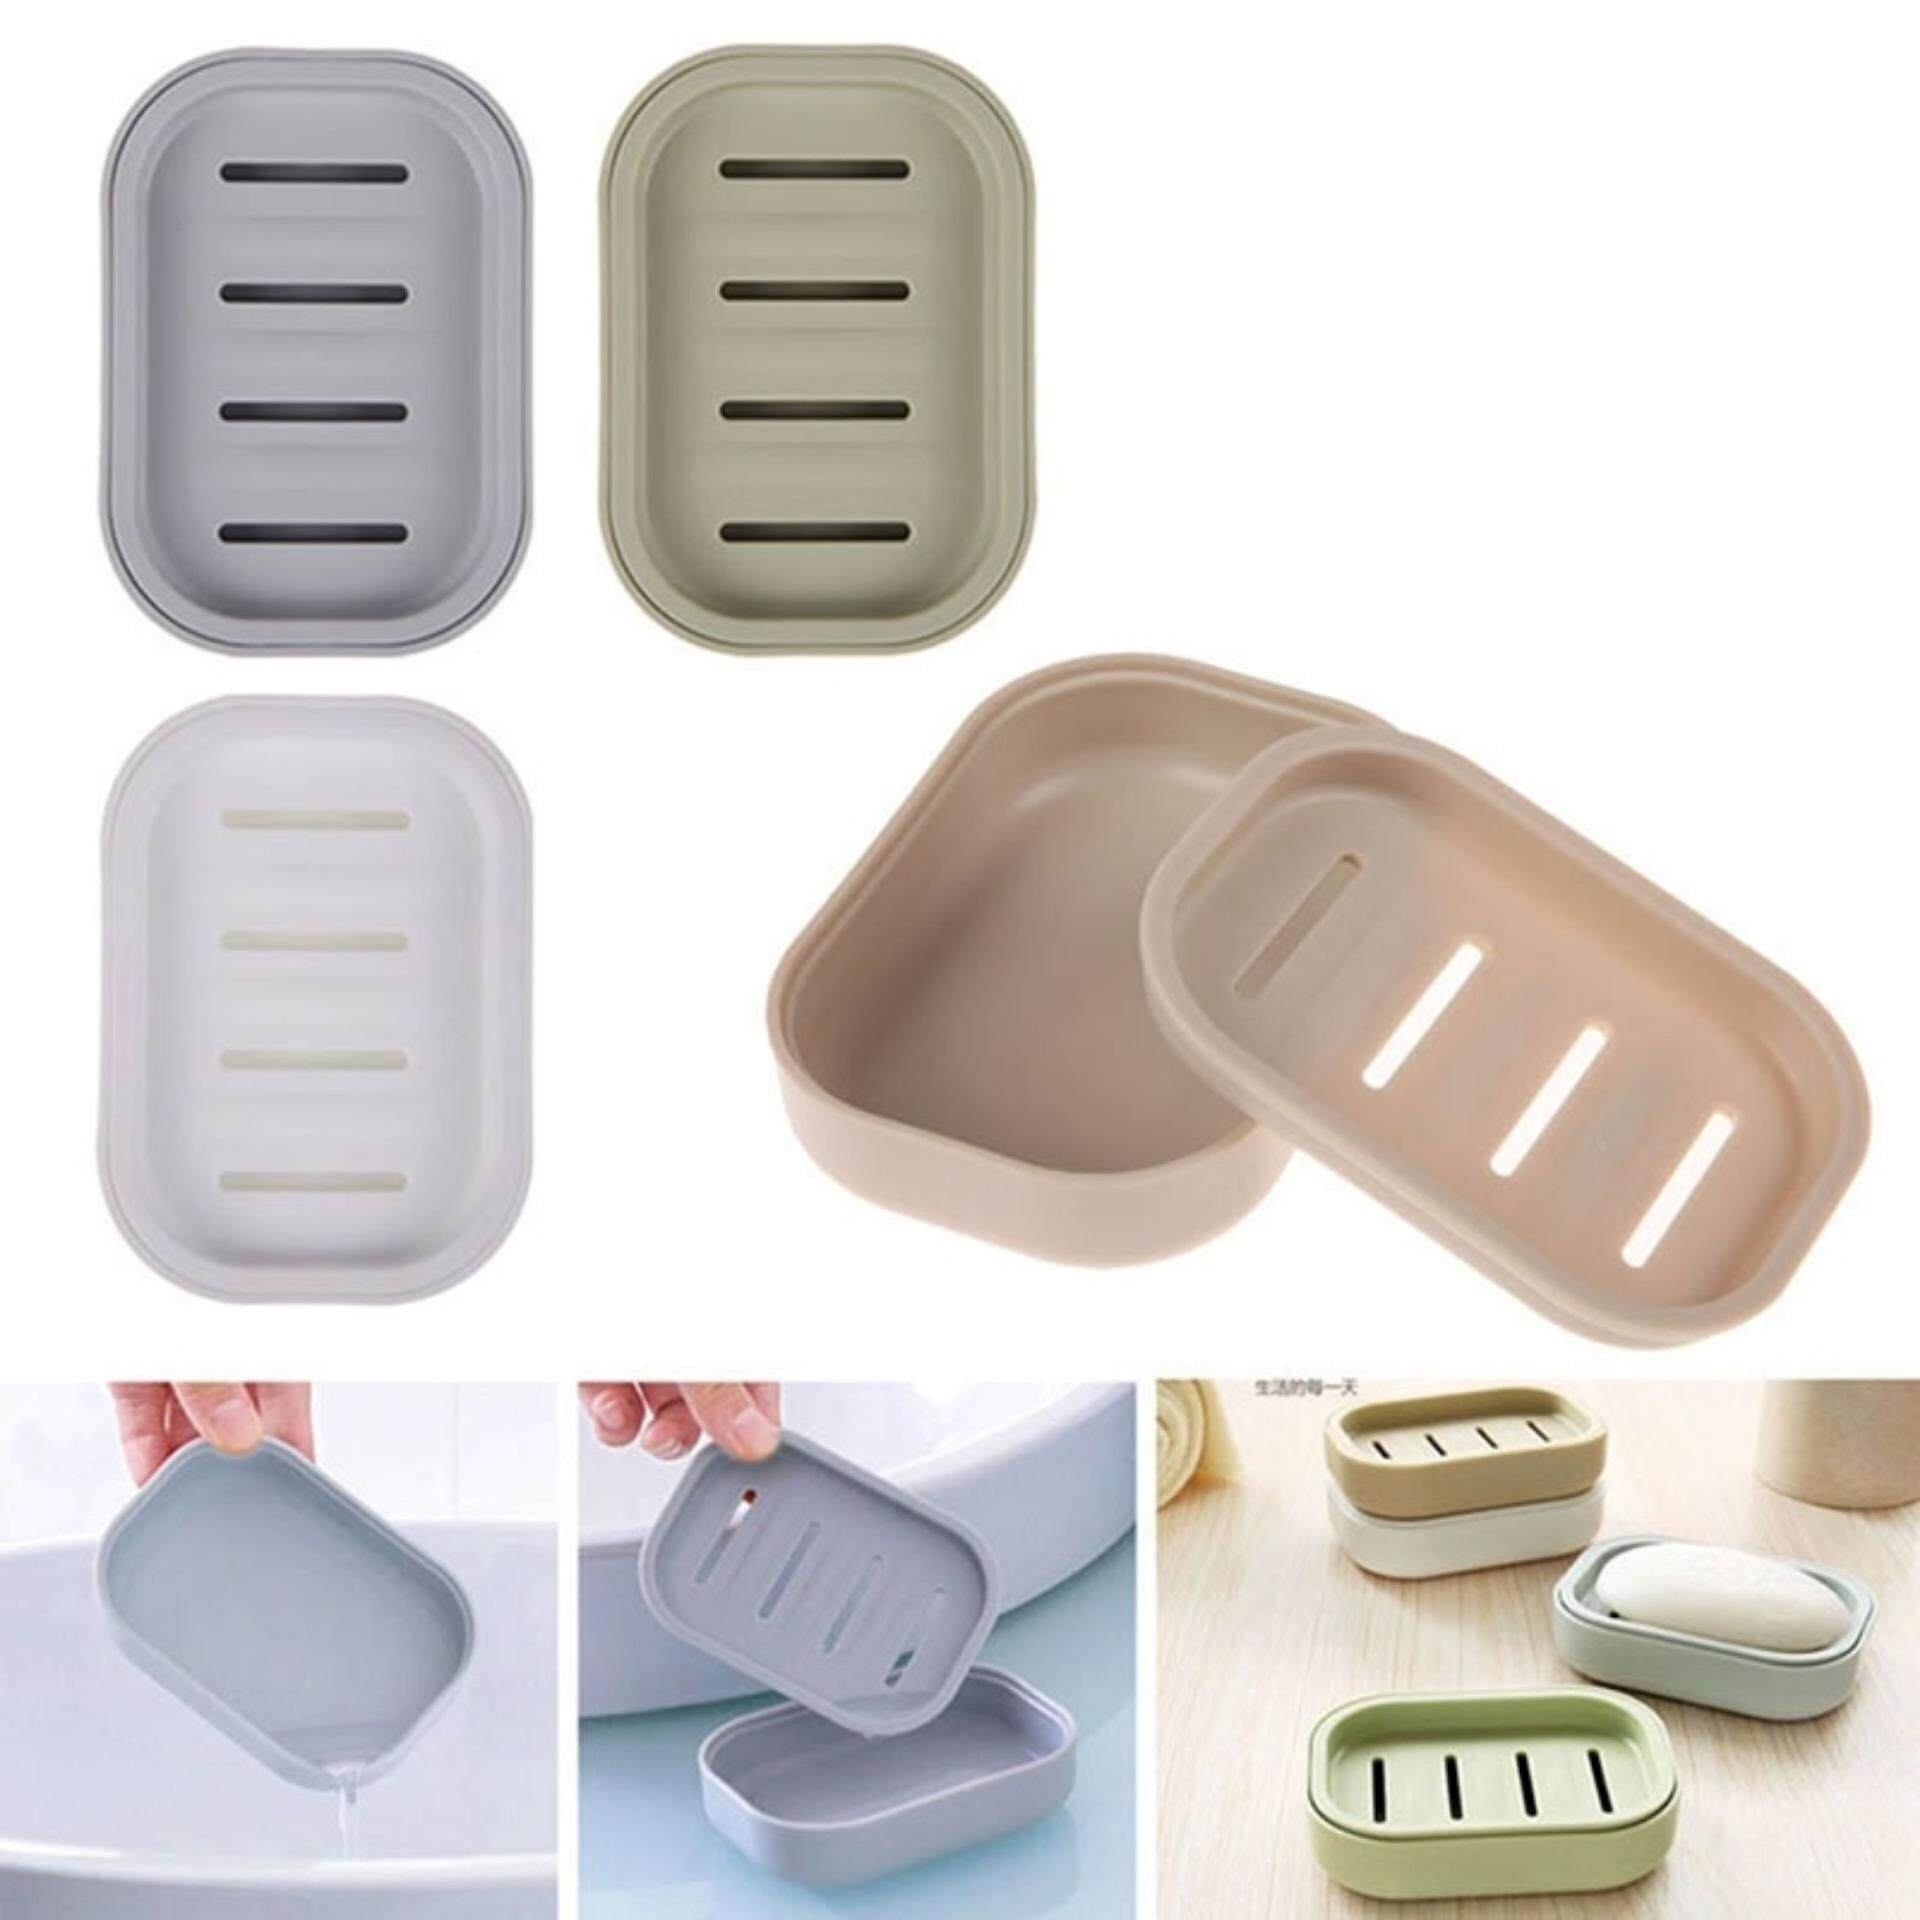 Graceful Soap Dispenser Dish Case Holder Container Box For Bathroom Travel Carry Case By Graceful Bearing.